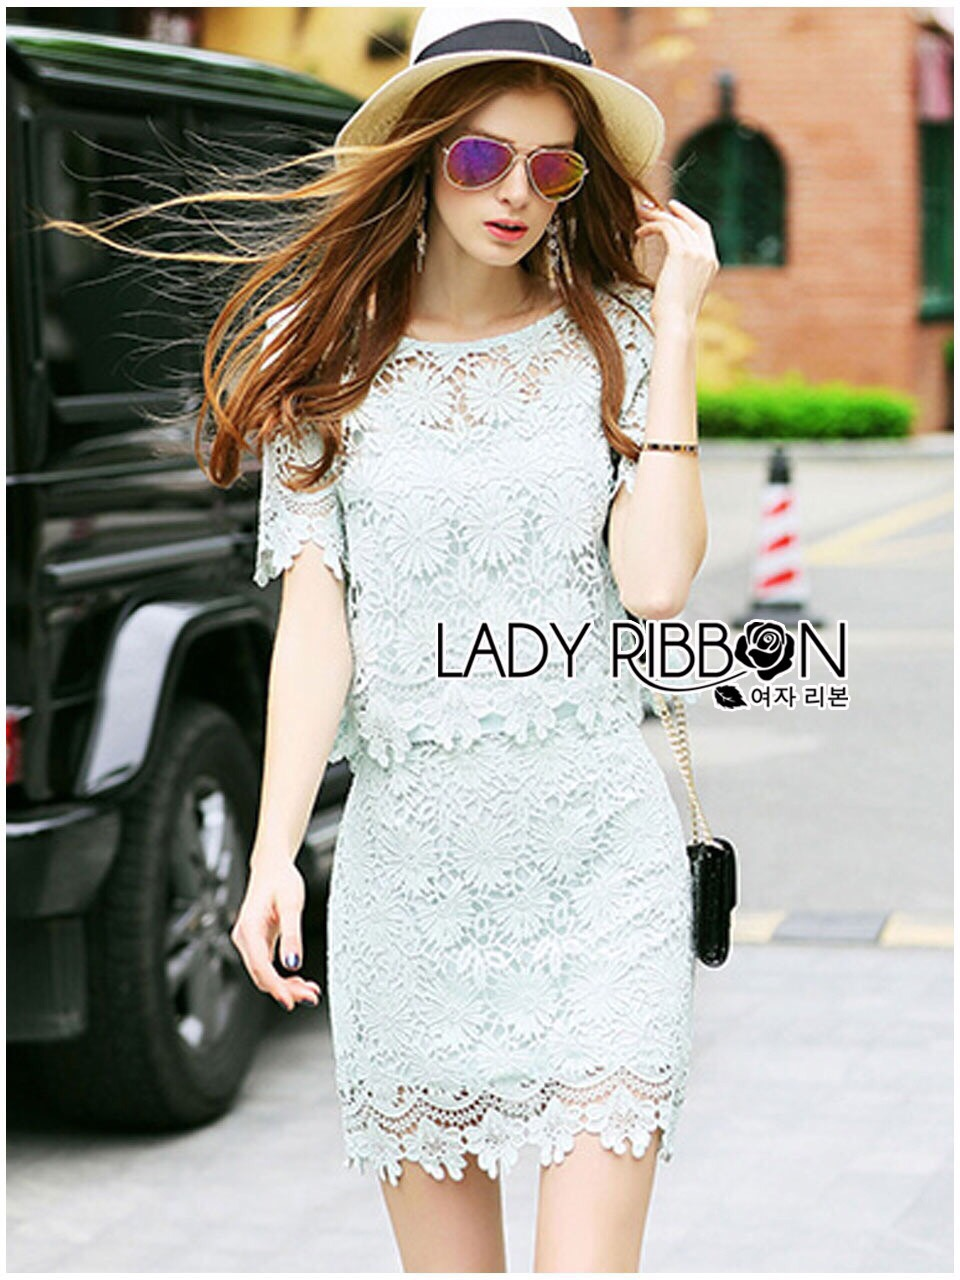 Lady Ribbon Korea Dress ลูกไม้ LR02130616 &#x1F380 Lady Ribbon's Made &#x1F380 Lady Jane Sweet Feminine Minty Lace Set